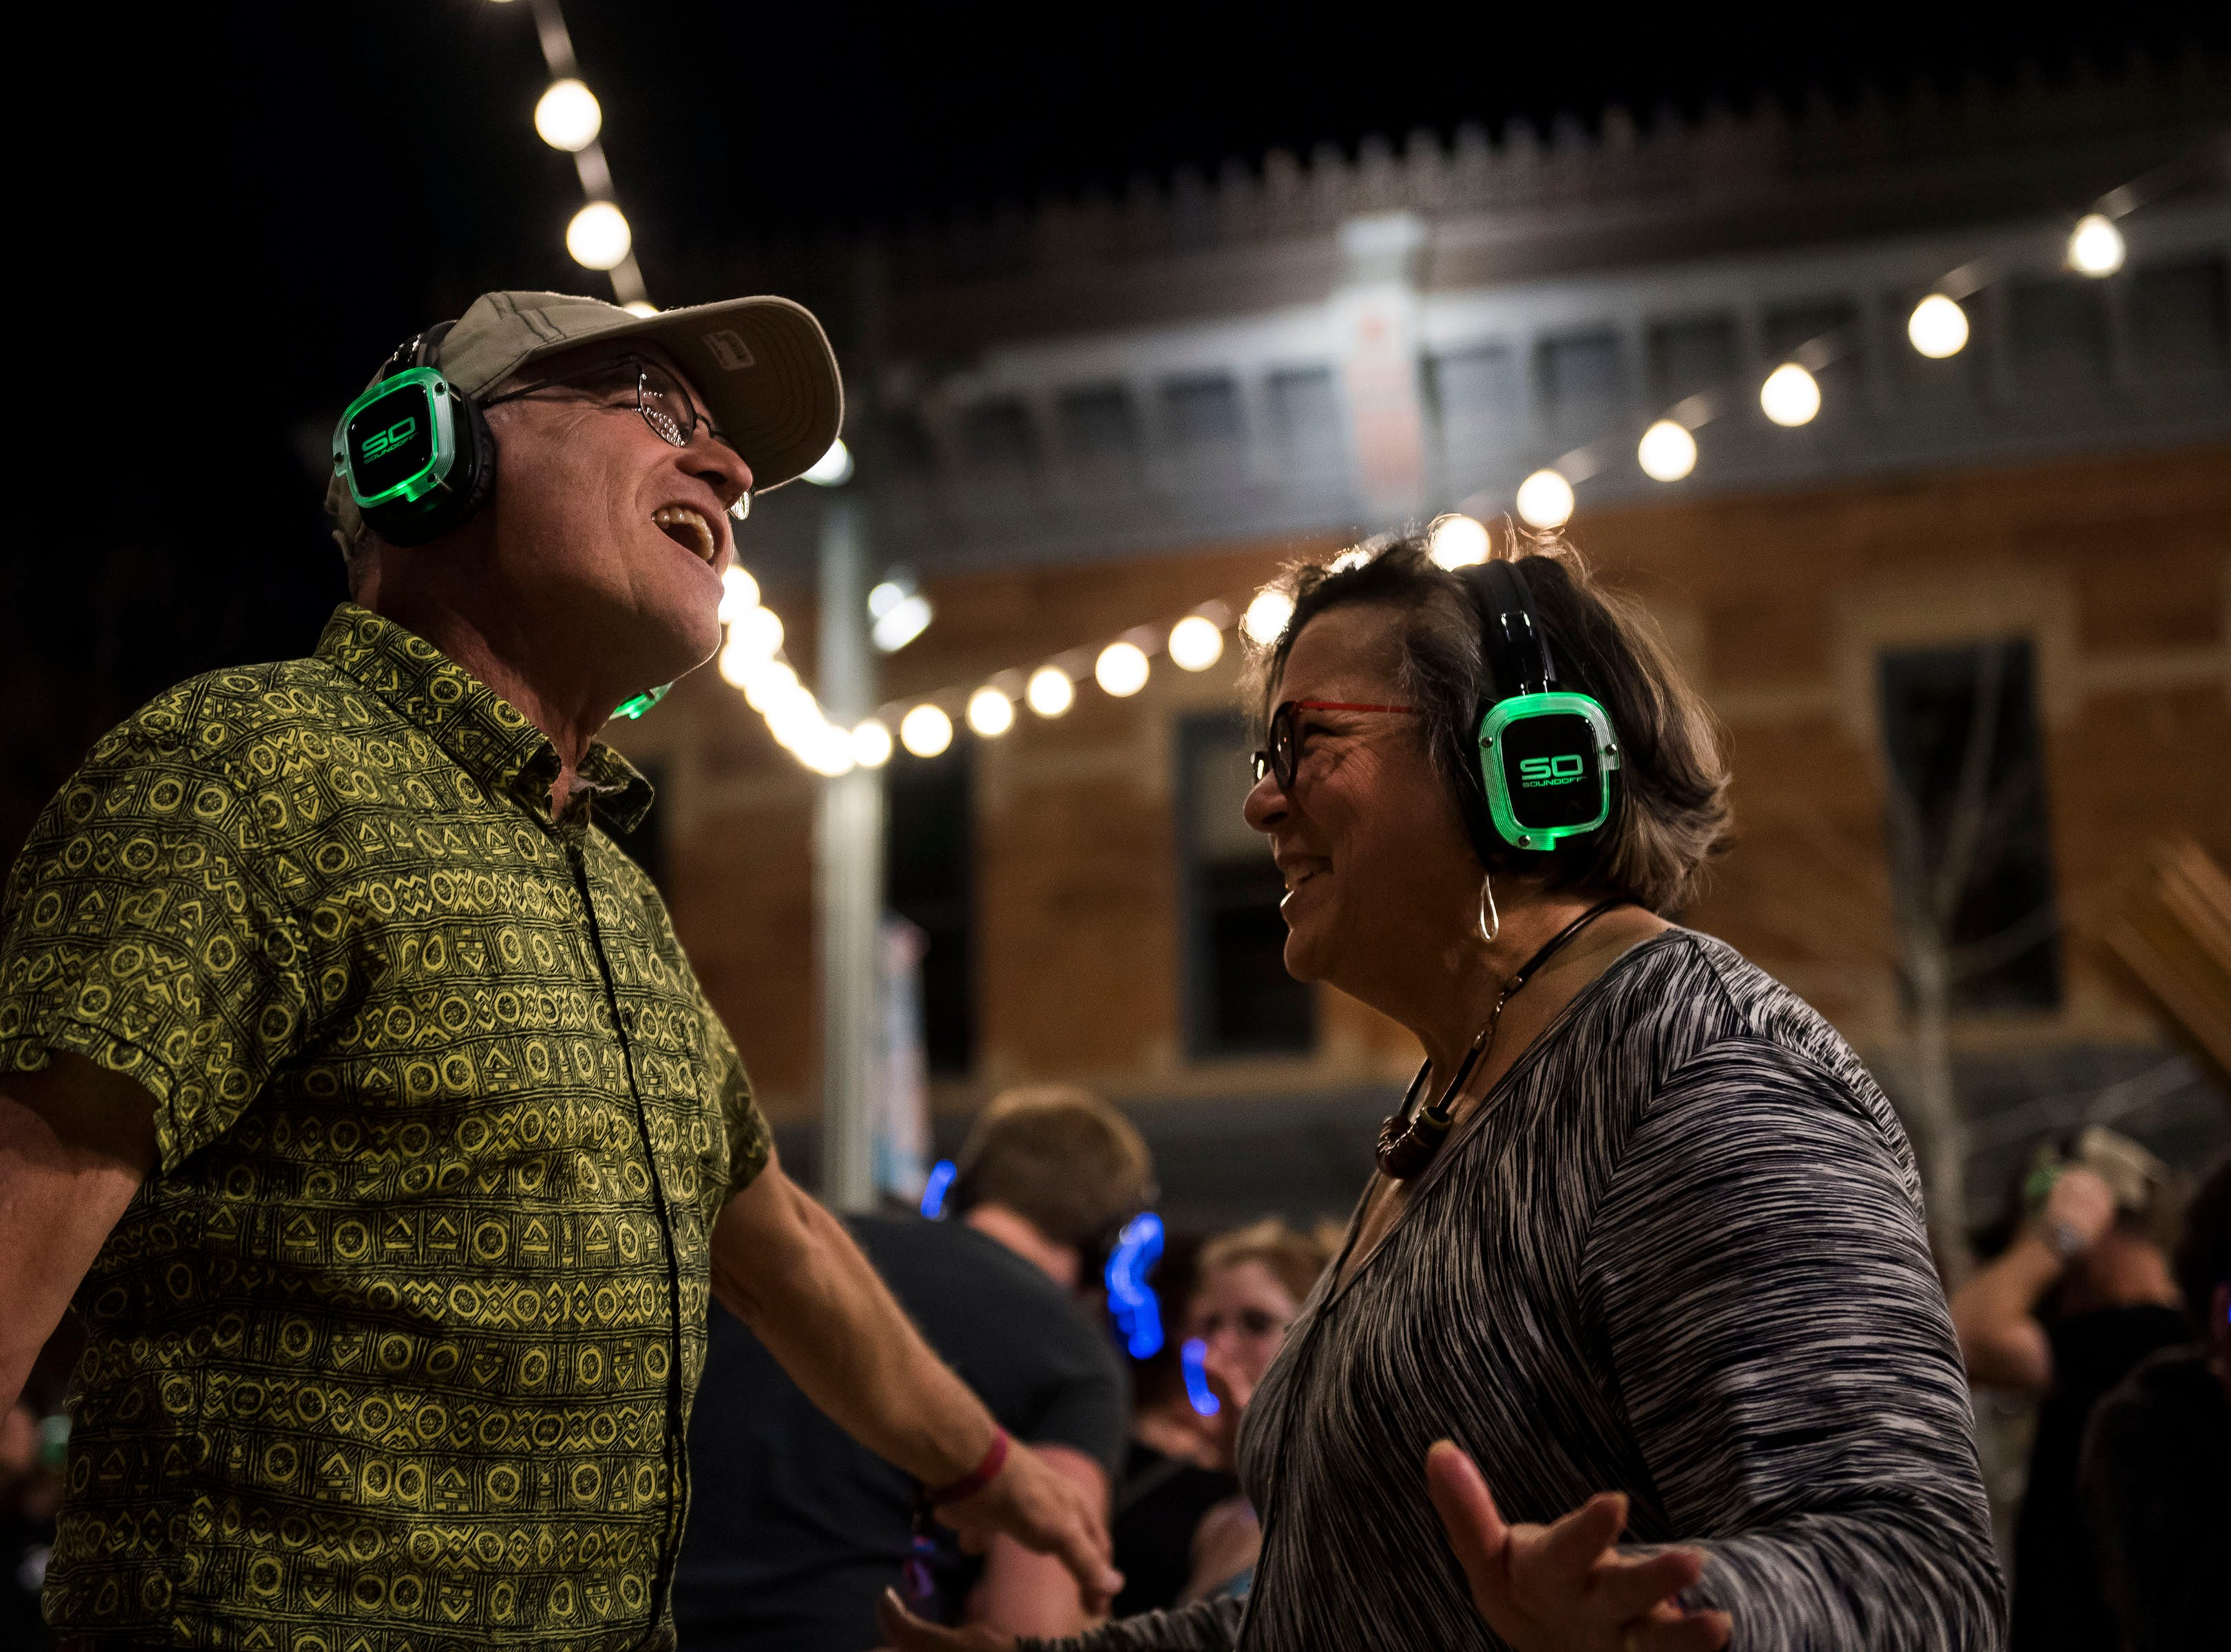 Marge and Willie Portilla listen to DJ Blakeye at the Sound Off Silent Disco at Old Town Square during the FoCoMX XI music festival on Friday, April 26, 2019, in Fort Collins, Colo.